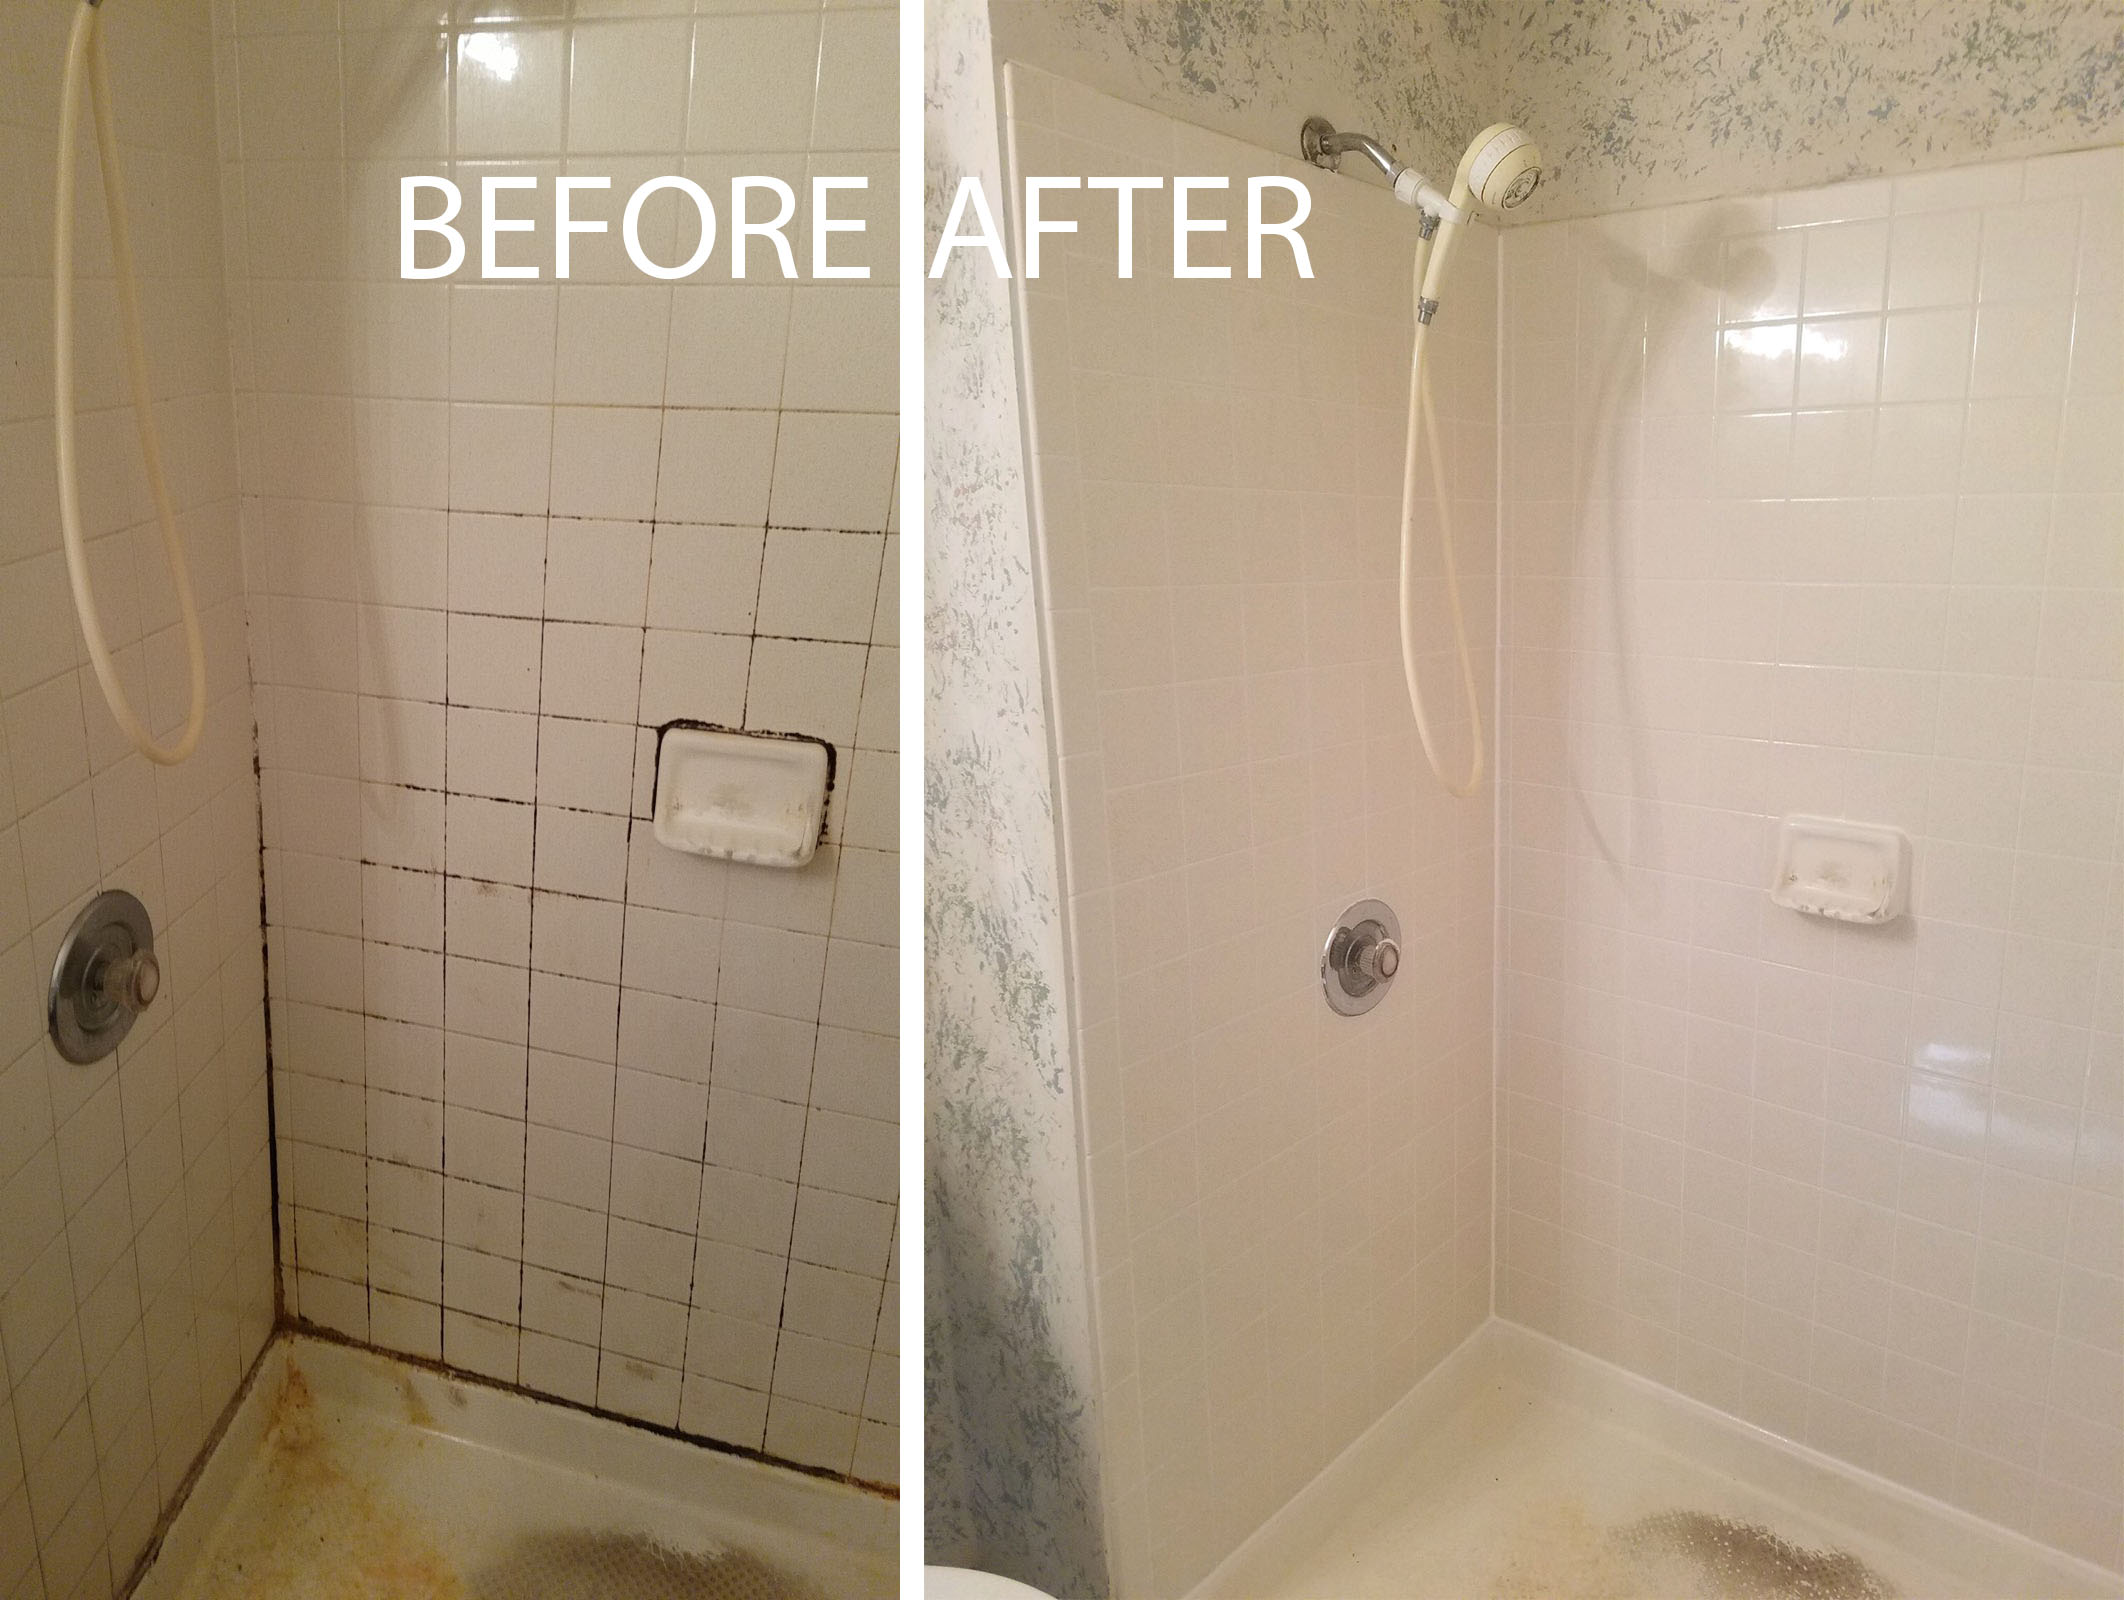 Grout Tile Cleaning Fredericksburg Virginia The Grout Medic